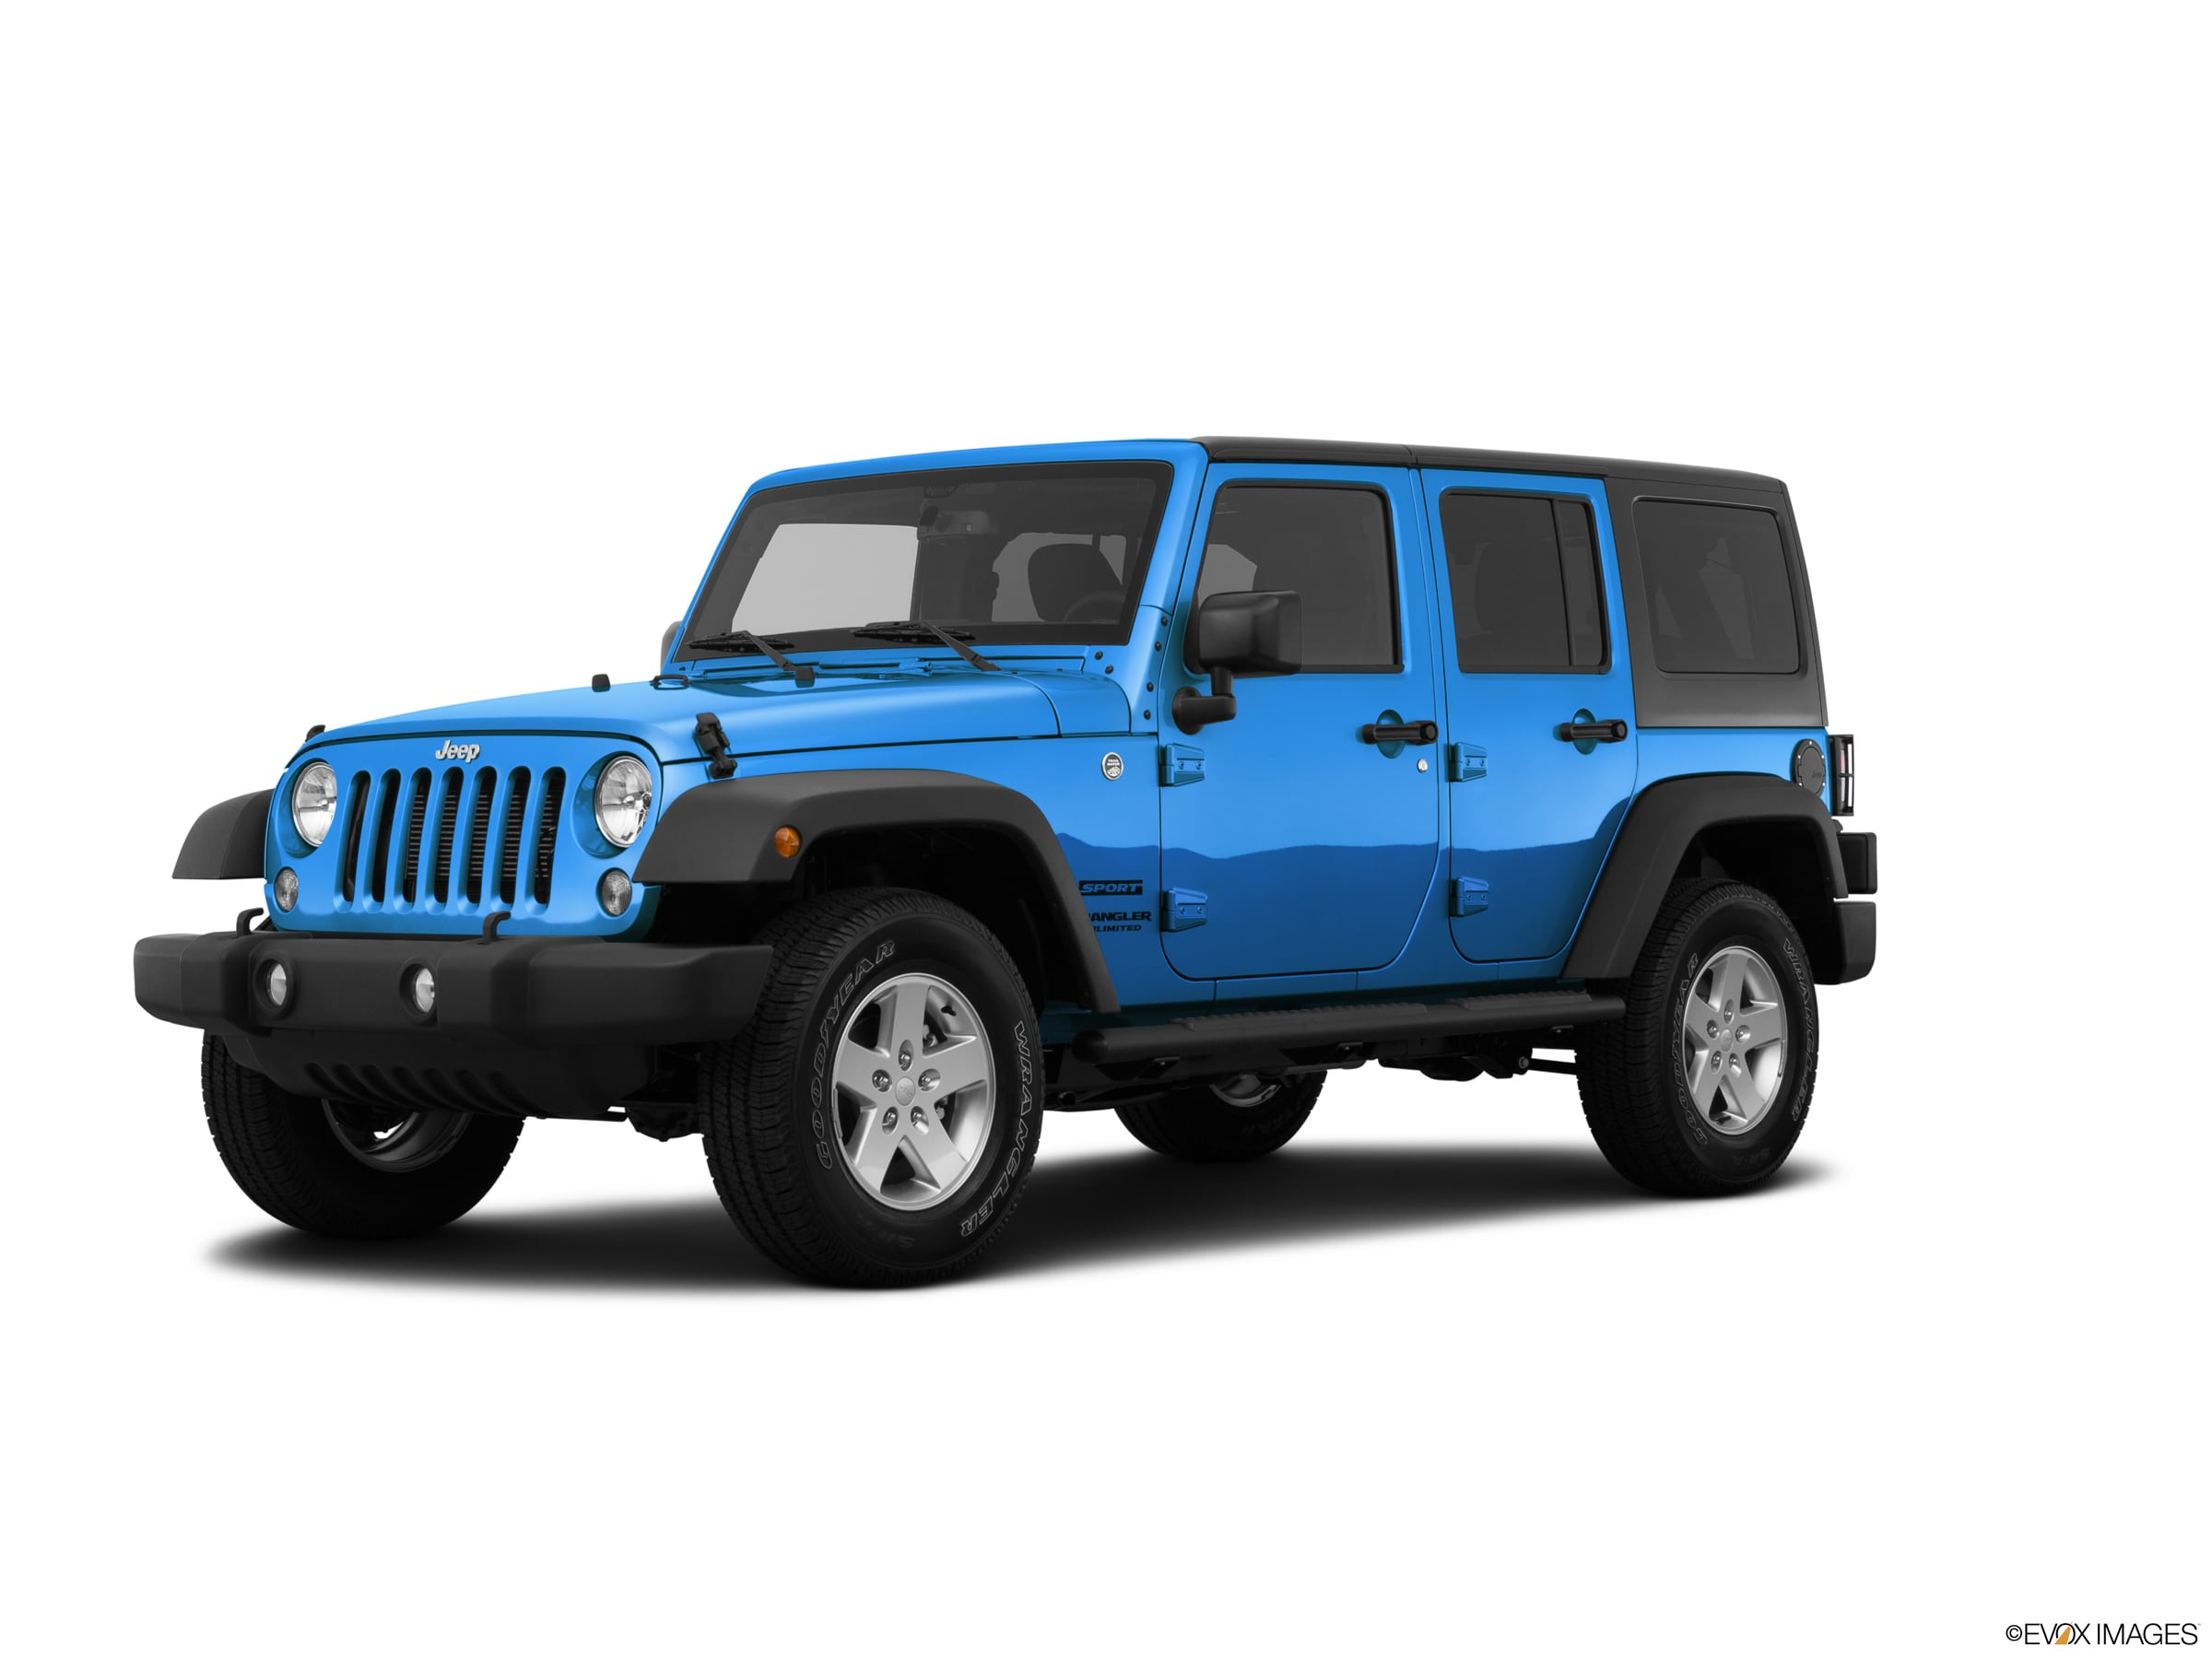 used 2015 jeep wrangler unlimited for sale gallipolis oh 1c4bjwdg4fl555301 norris northup dodge inc serving athens jackson oh huntington wv 1c4bjwdg4fl555301 norris northup dodge